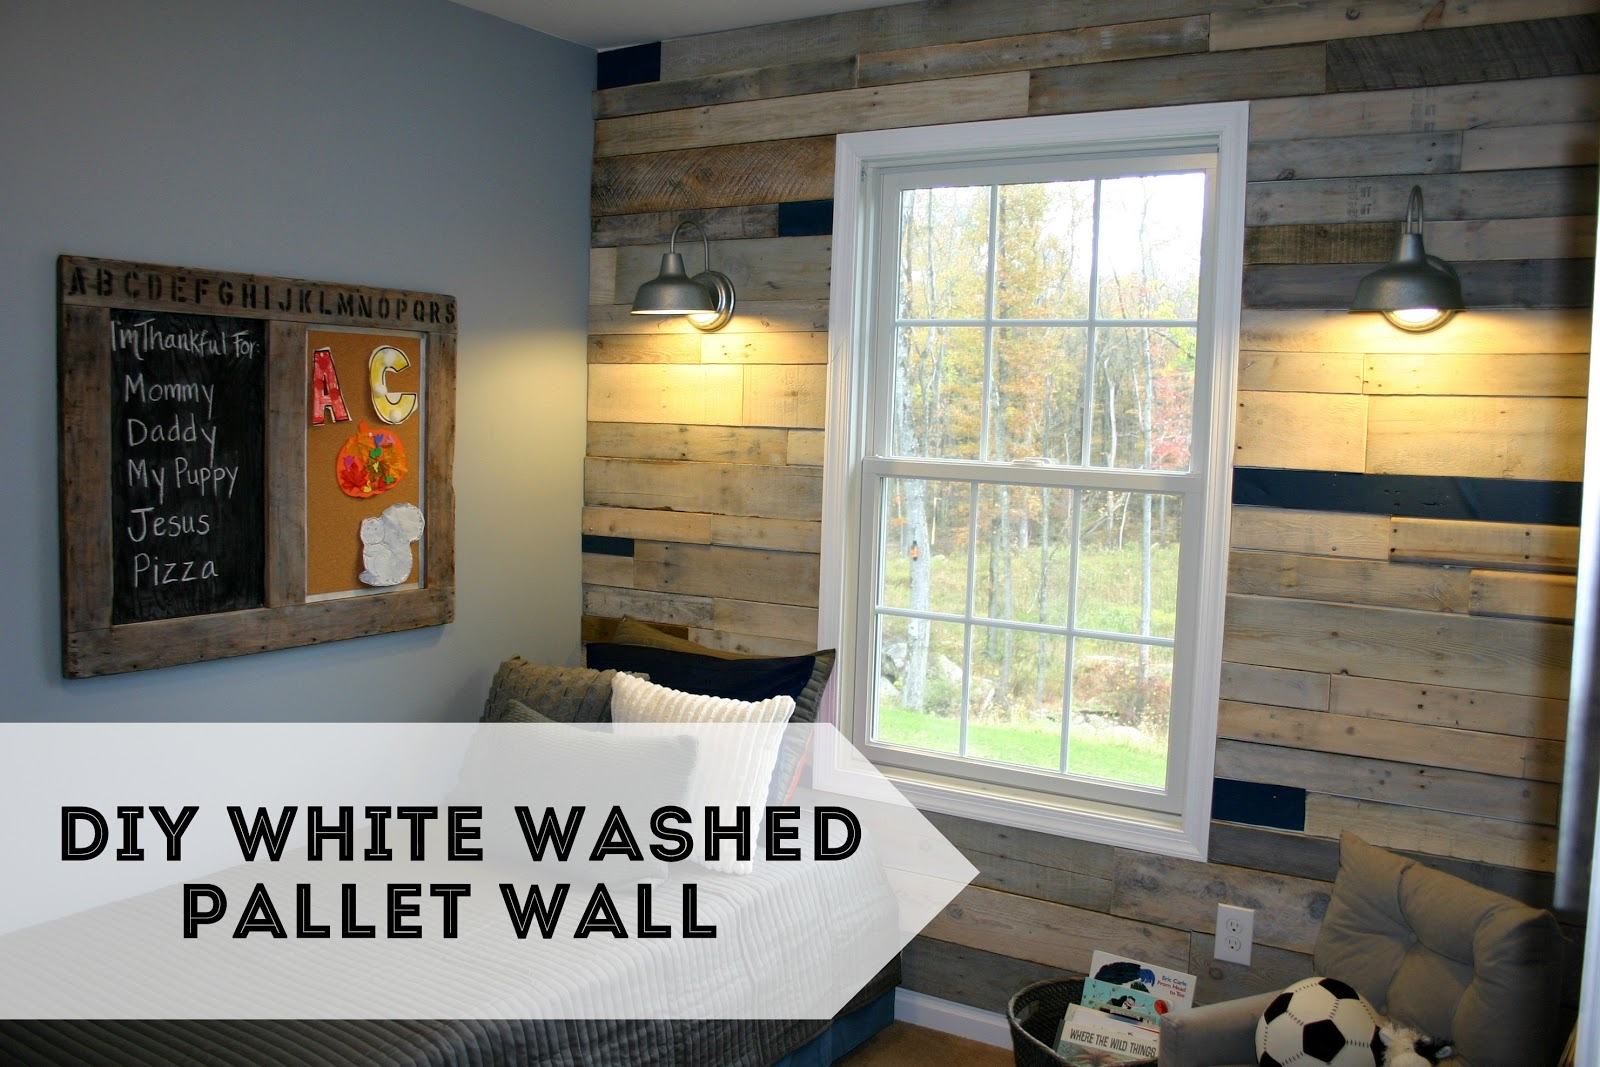 Well This Time We Thought Wed Take It To The Next Level And Do An Entire Wall Of Pallet Wood